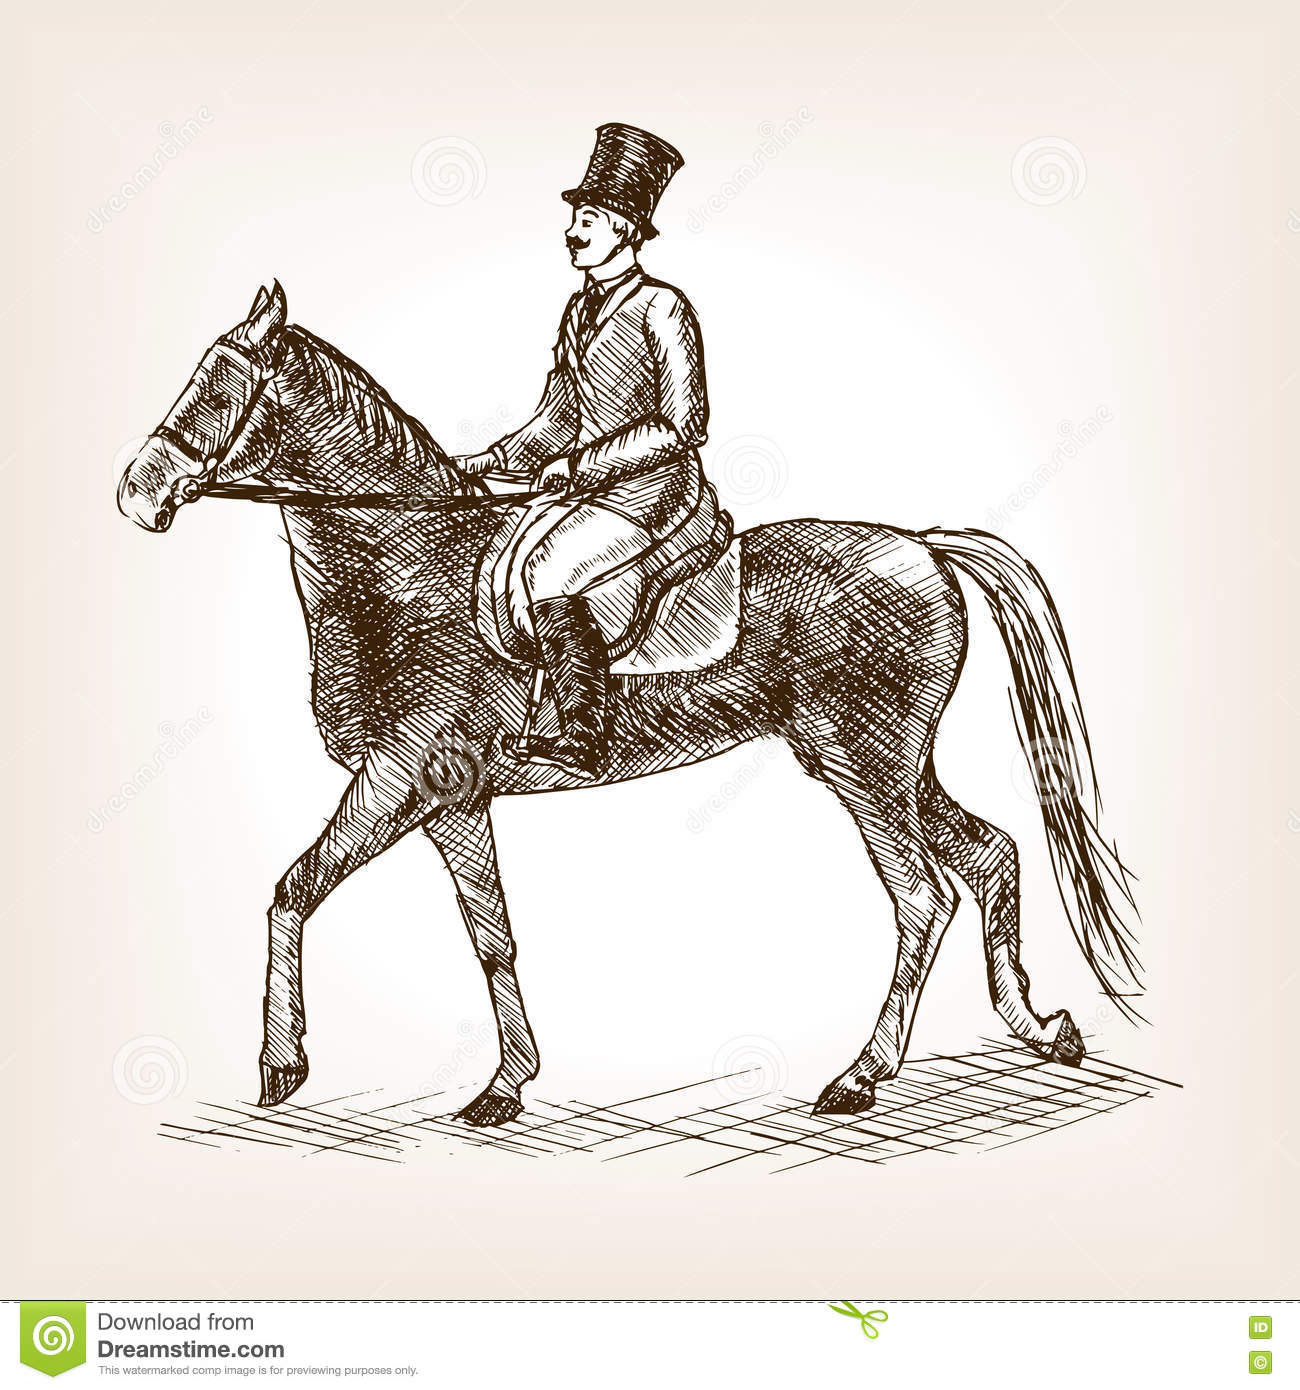 Vintage Horse Stock Illustrations 23 777 Vintage Horse Stock Illustrations Vectors Clipart Dreamstime